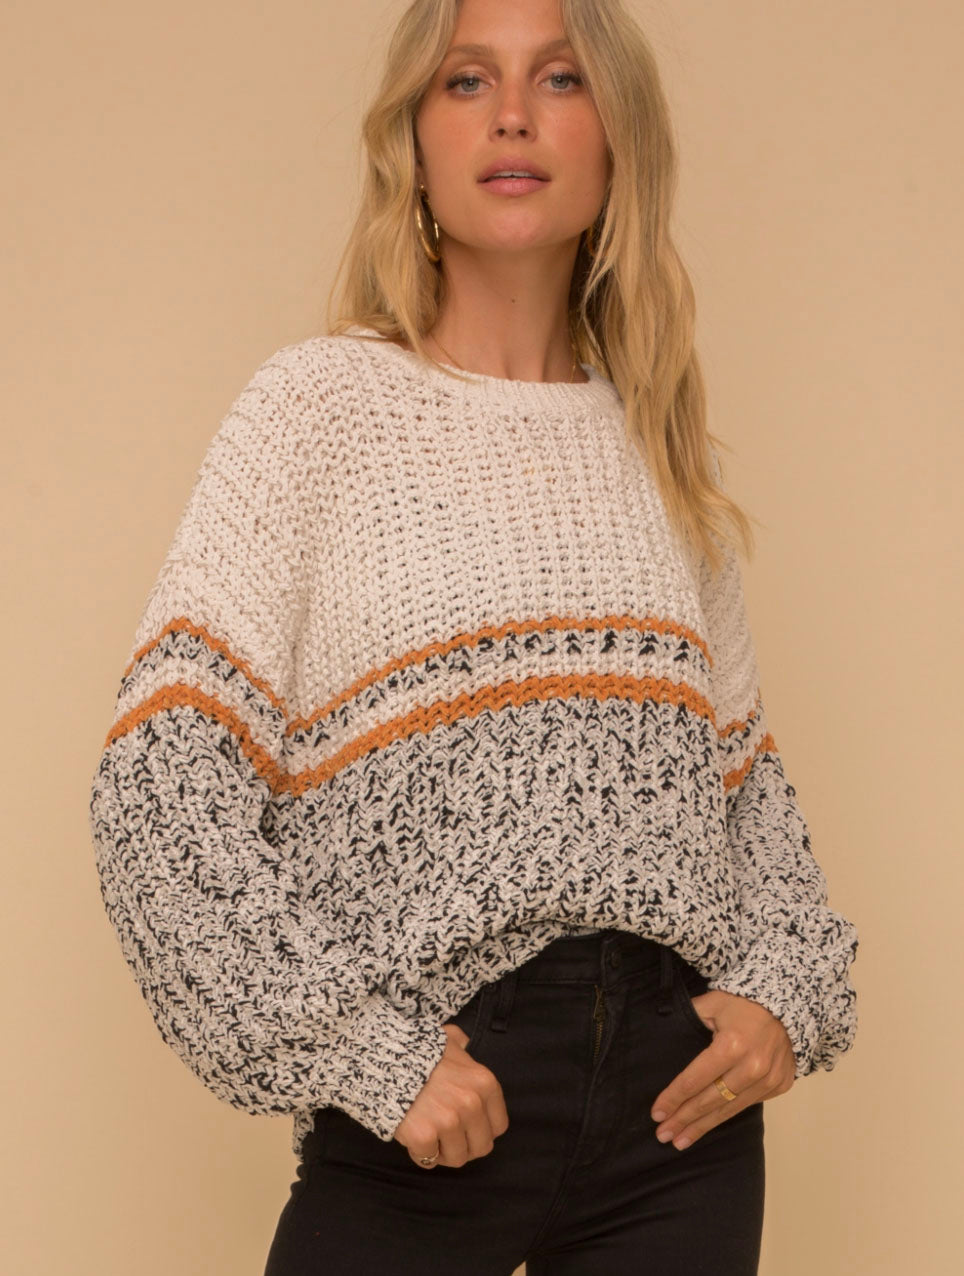 Hem & Thread Color Block Sweater in Ivory/Black/Mustard